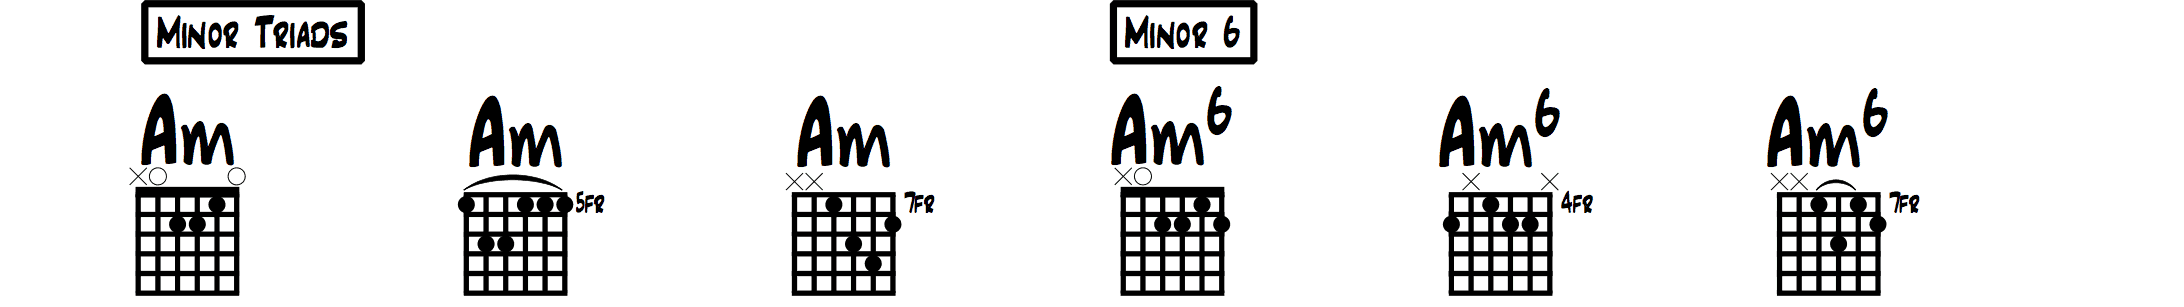 Minor Scale Chords Overview 5